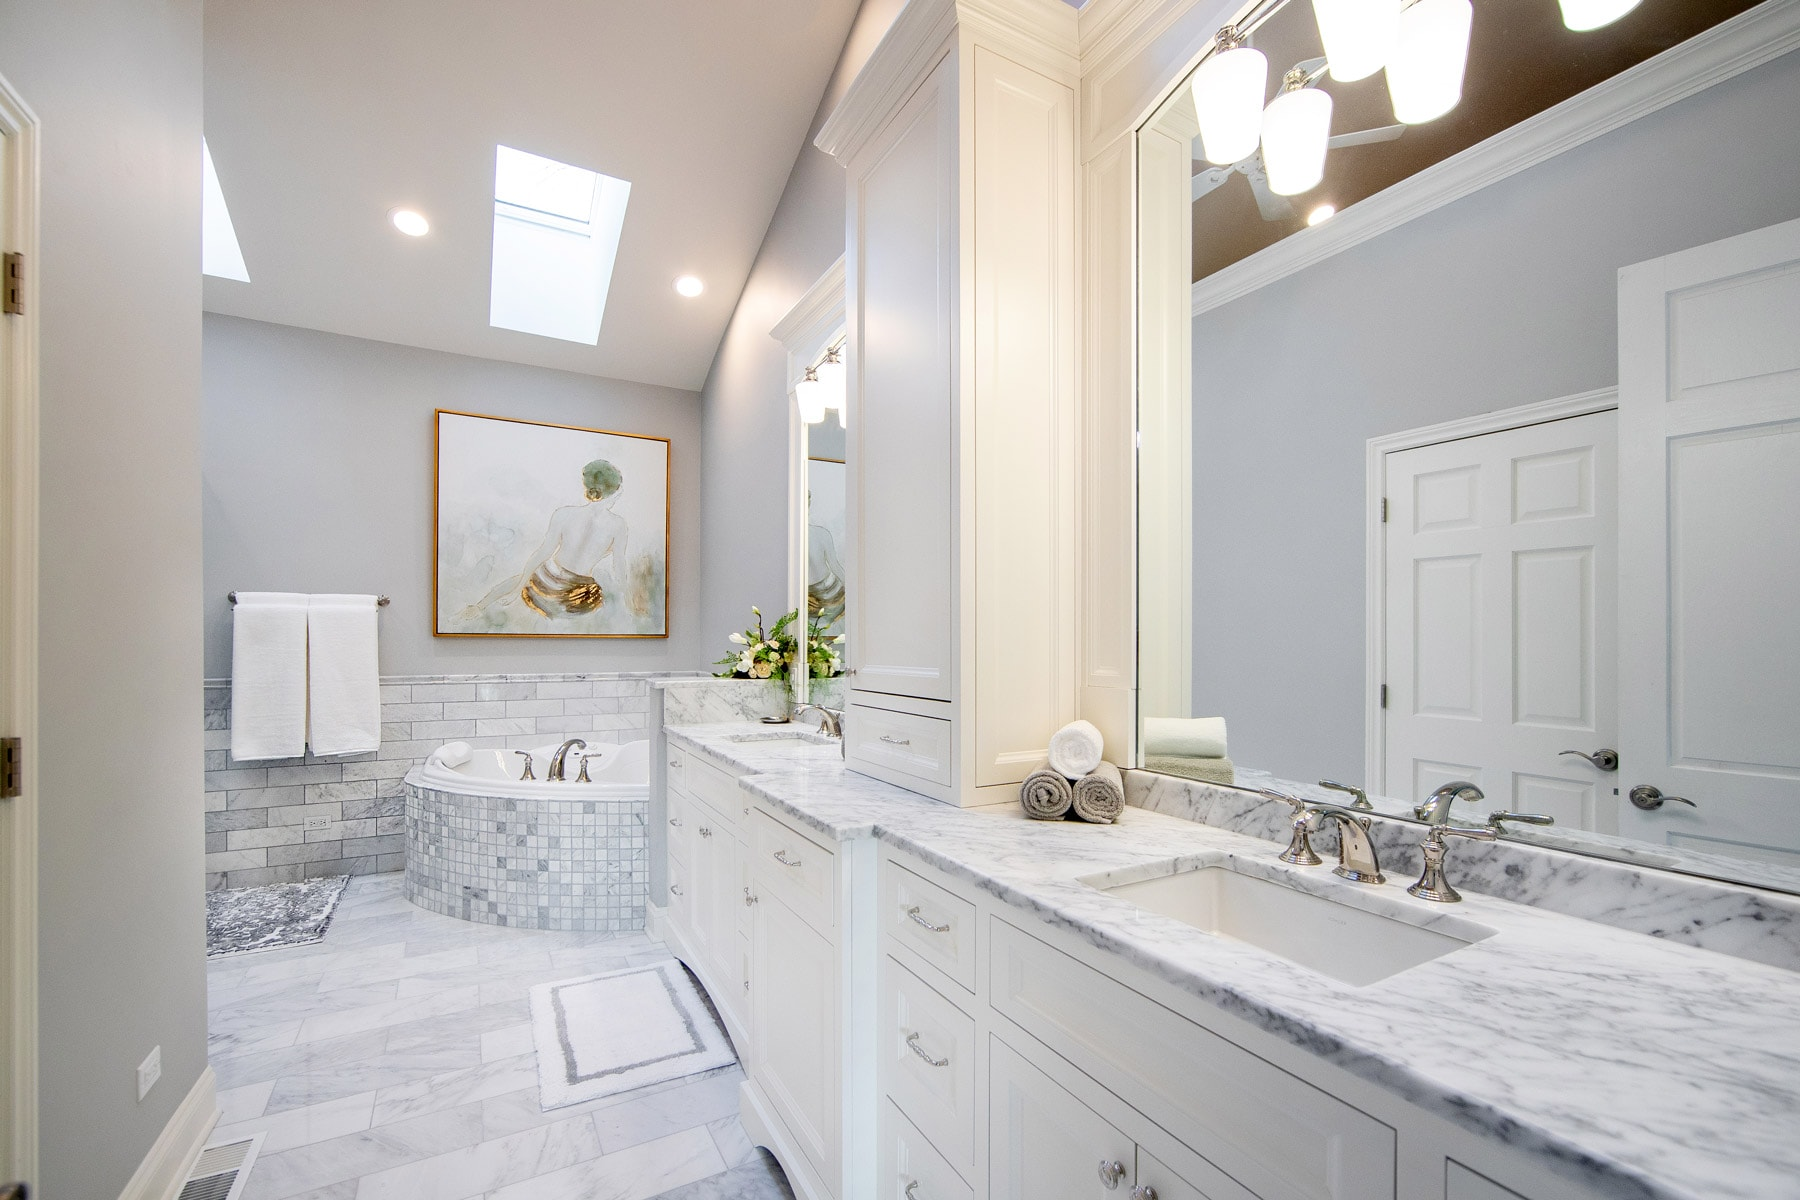 Luxurious Master Bathroom Remodel - Linly Designs on Master Bathroom Remodel Ideas  id=33919